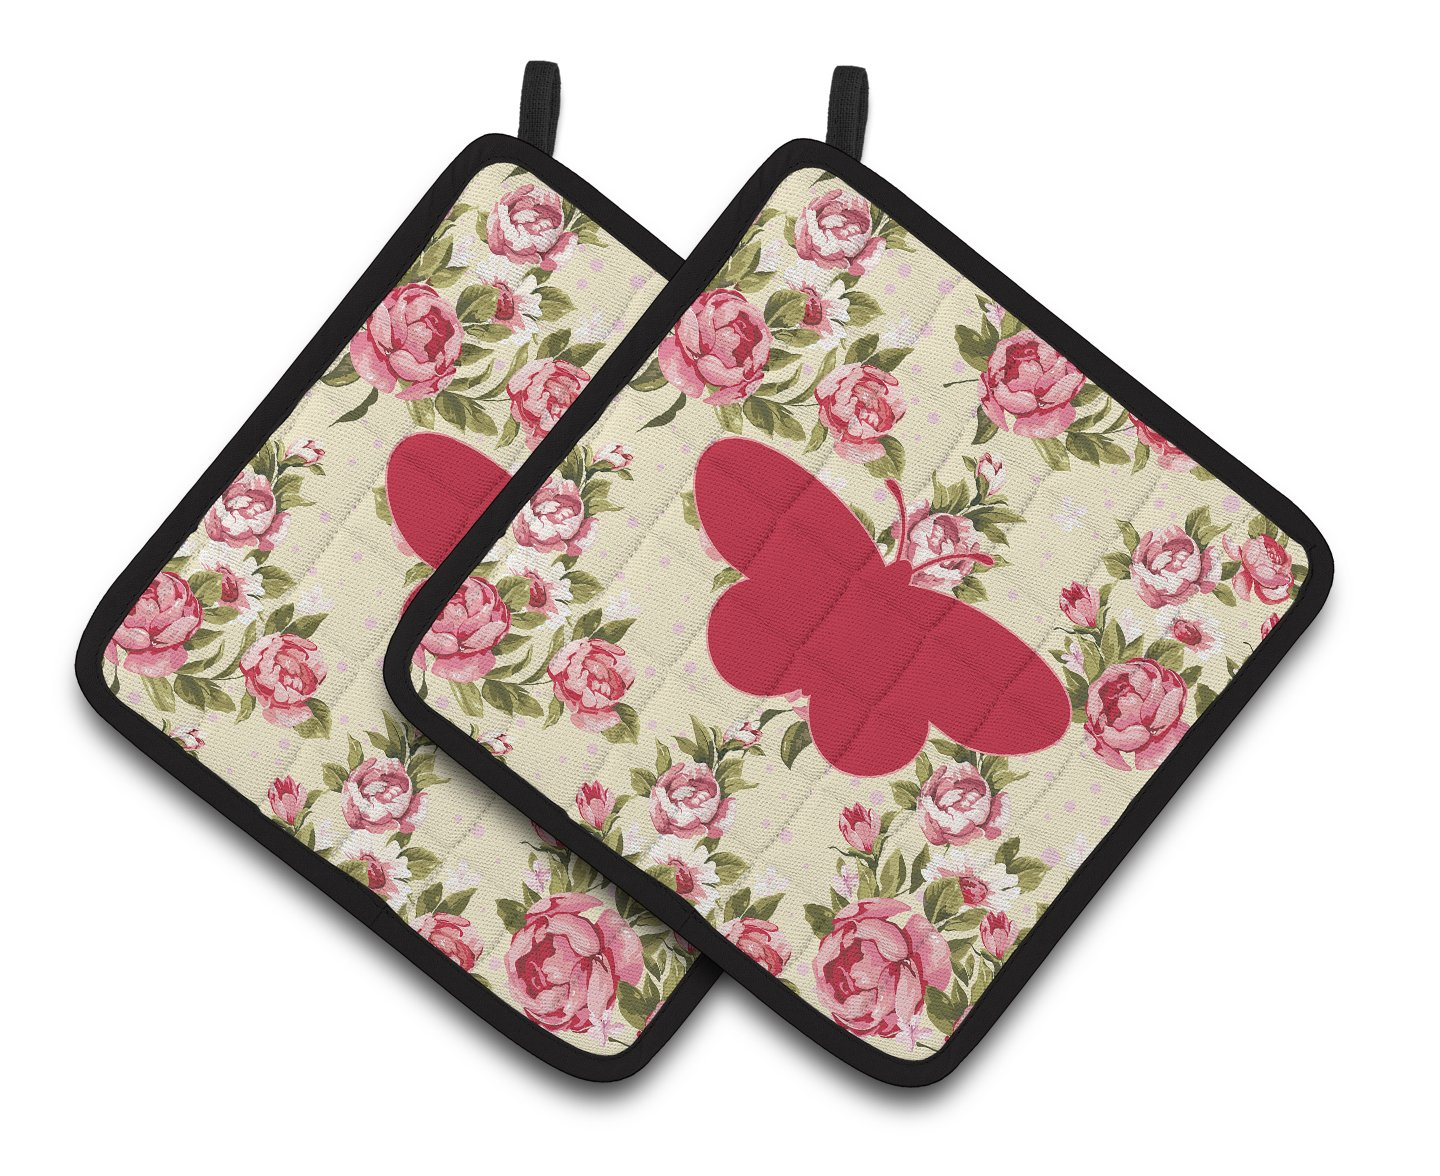 Multicolor Carolines Treasures Butterfly Shabby Chic Yellow Roses Pair of Pot Holders BB1051-RS-YW-PTHD 7.5HX7.5W